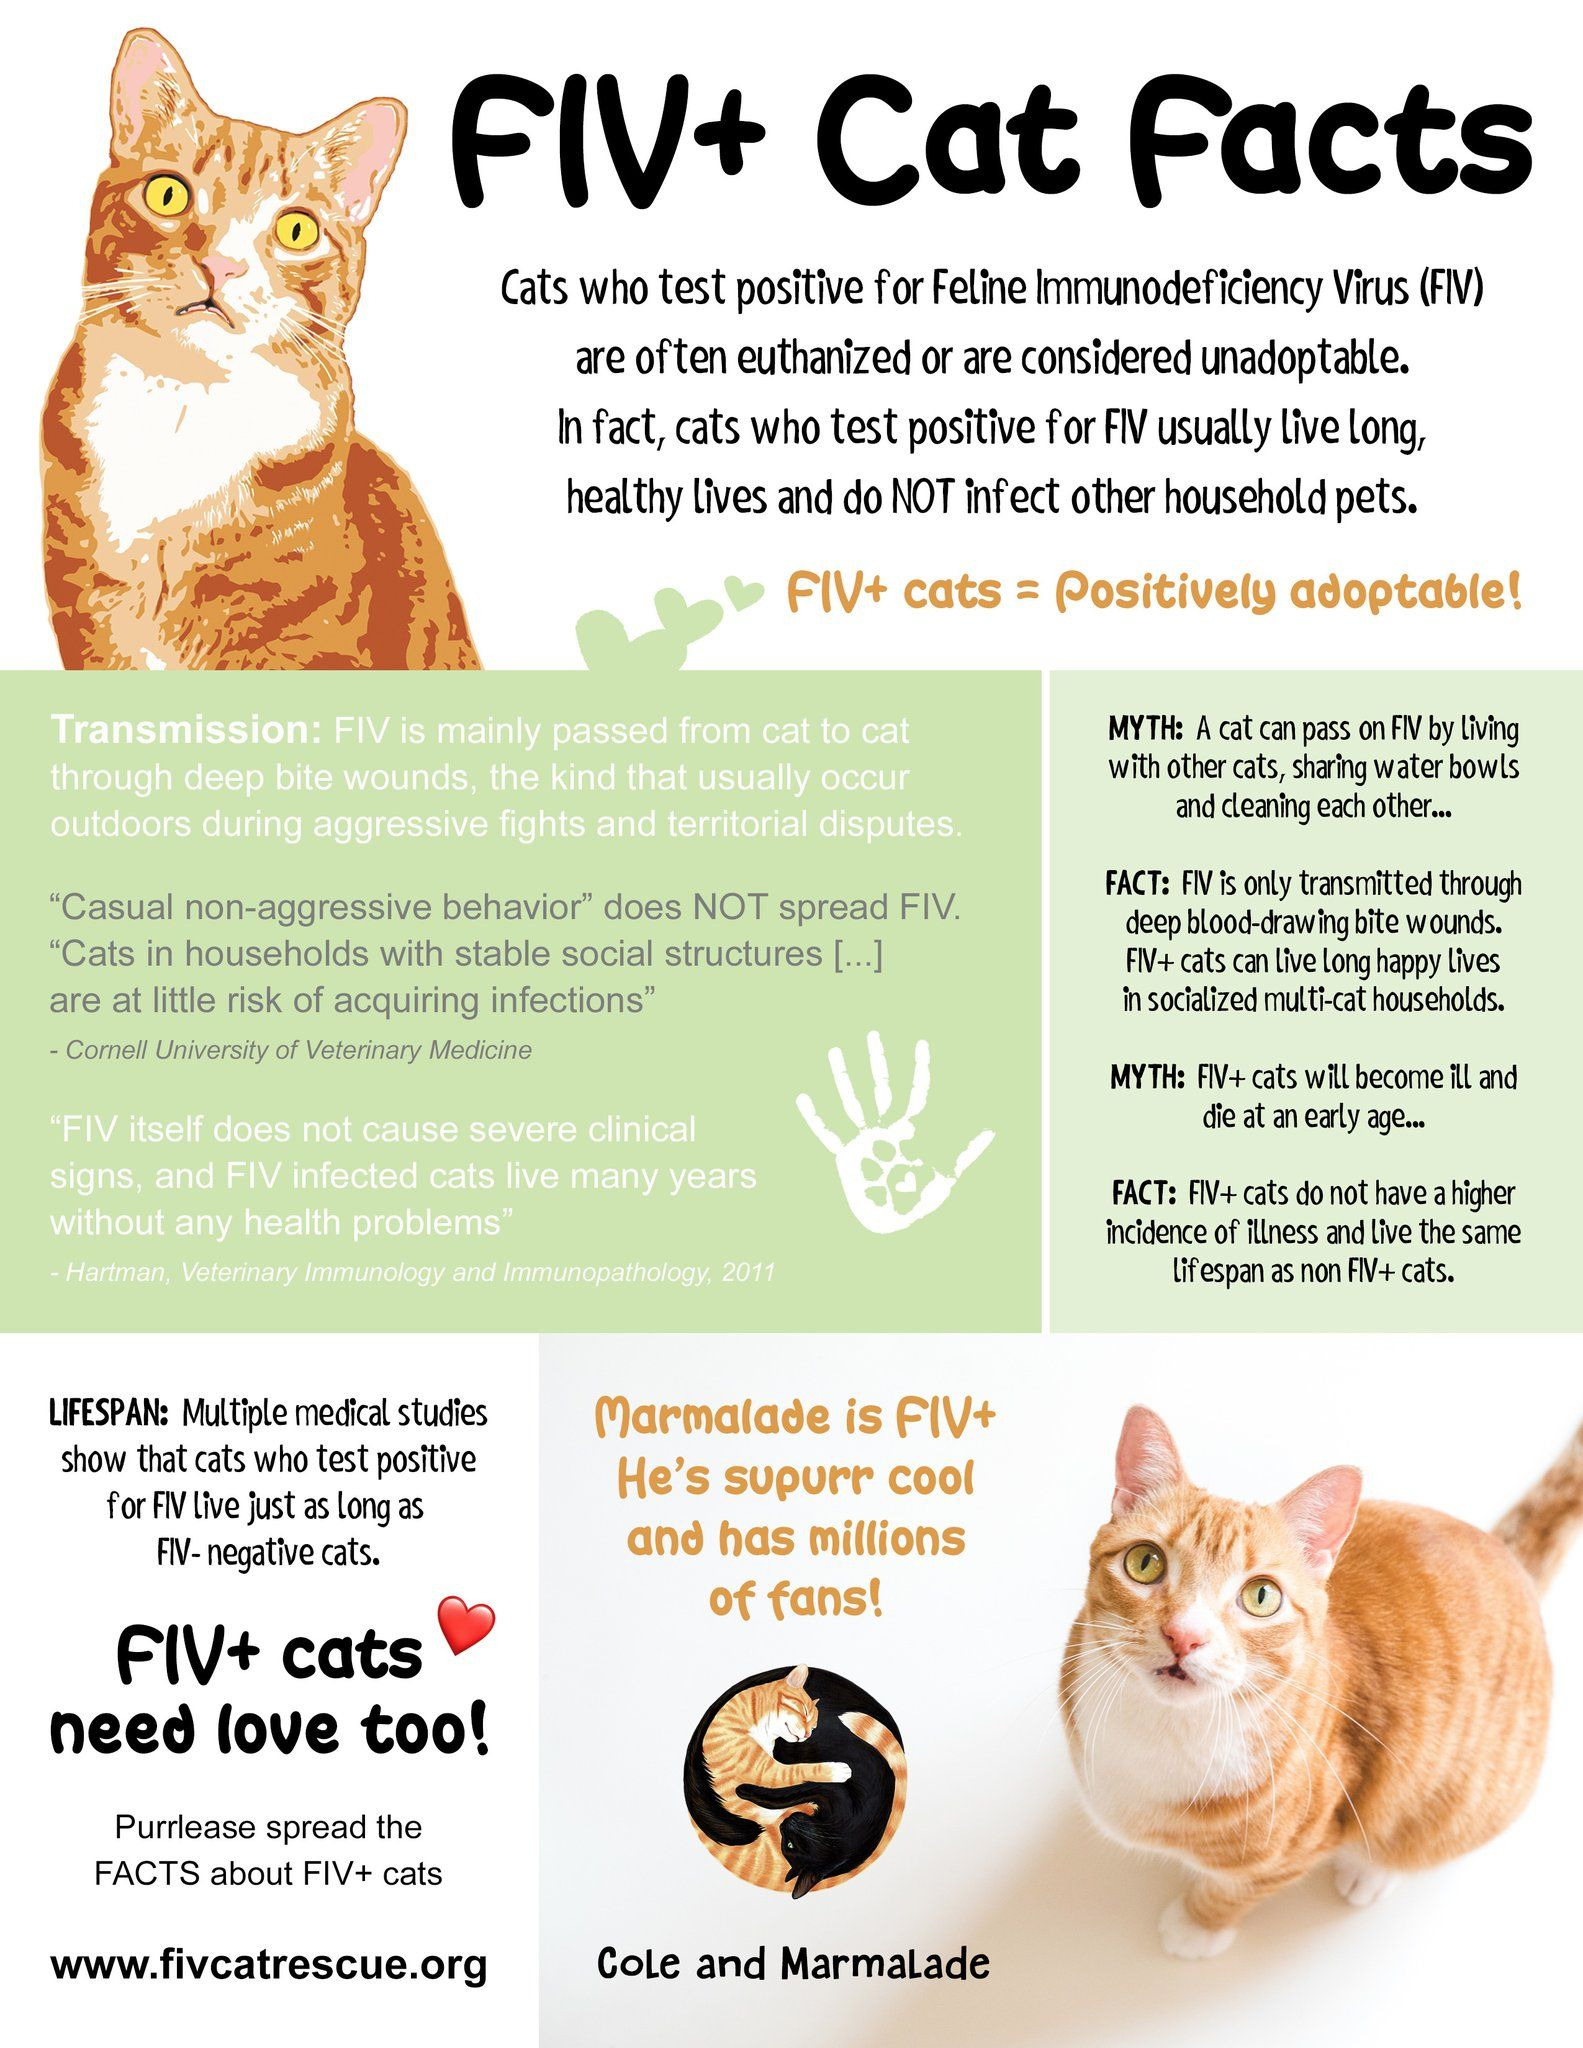 Cole Marmalade On Twitter Cat Facts Cats Cat Adoption